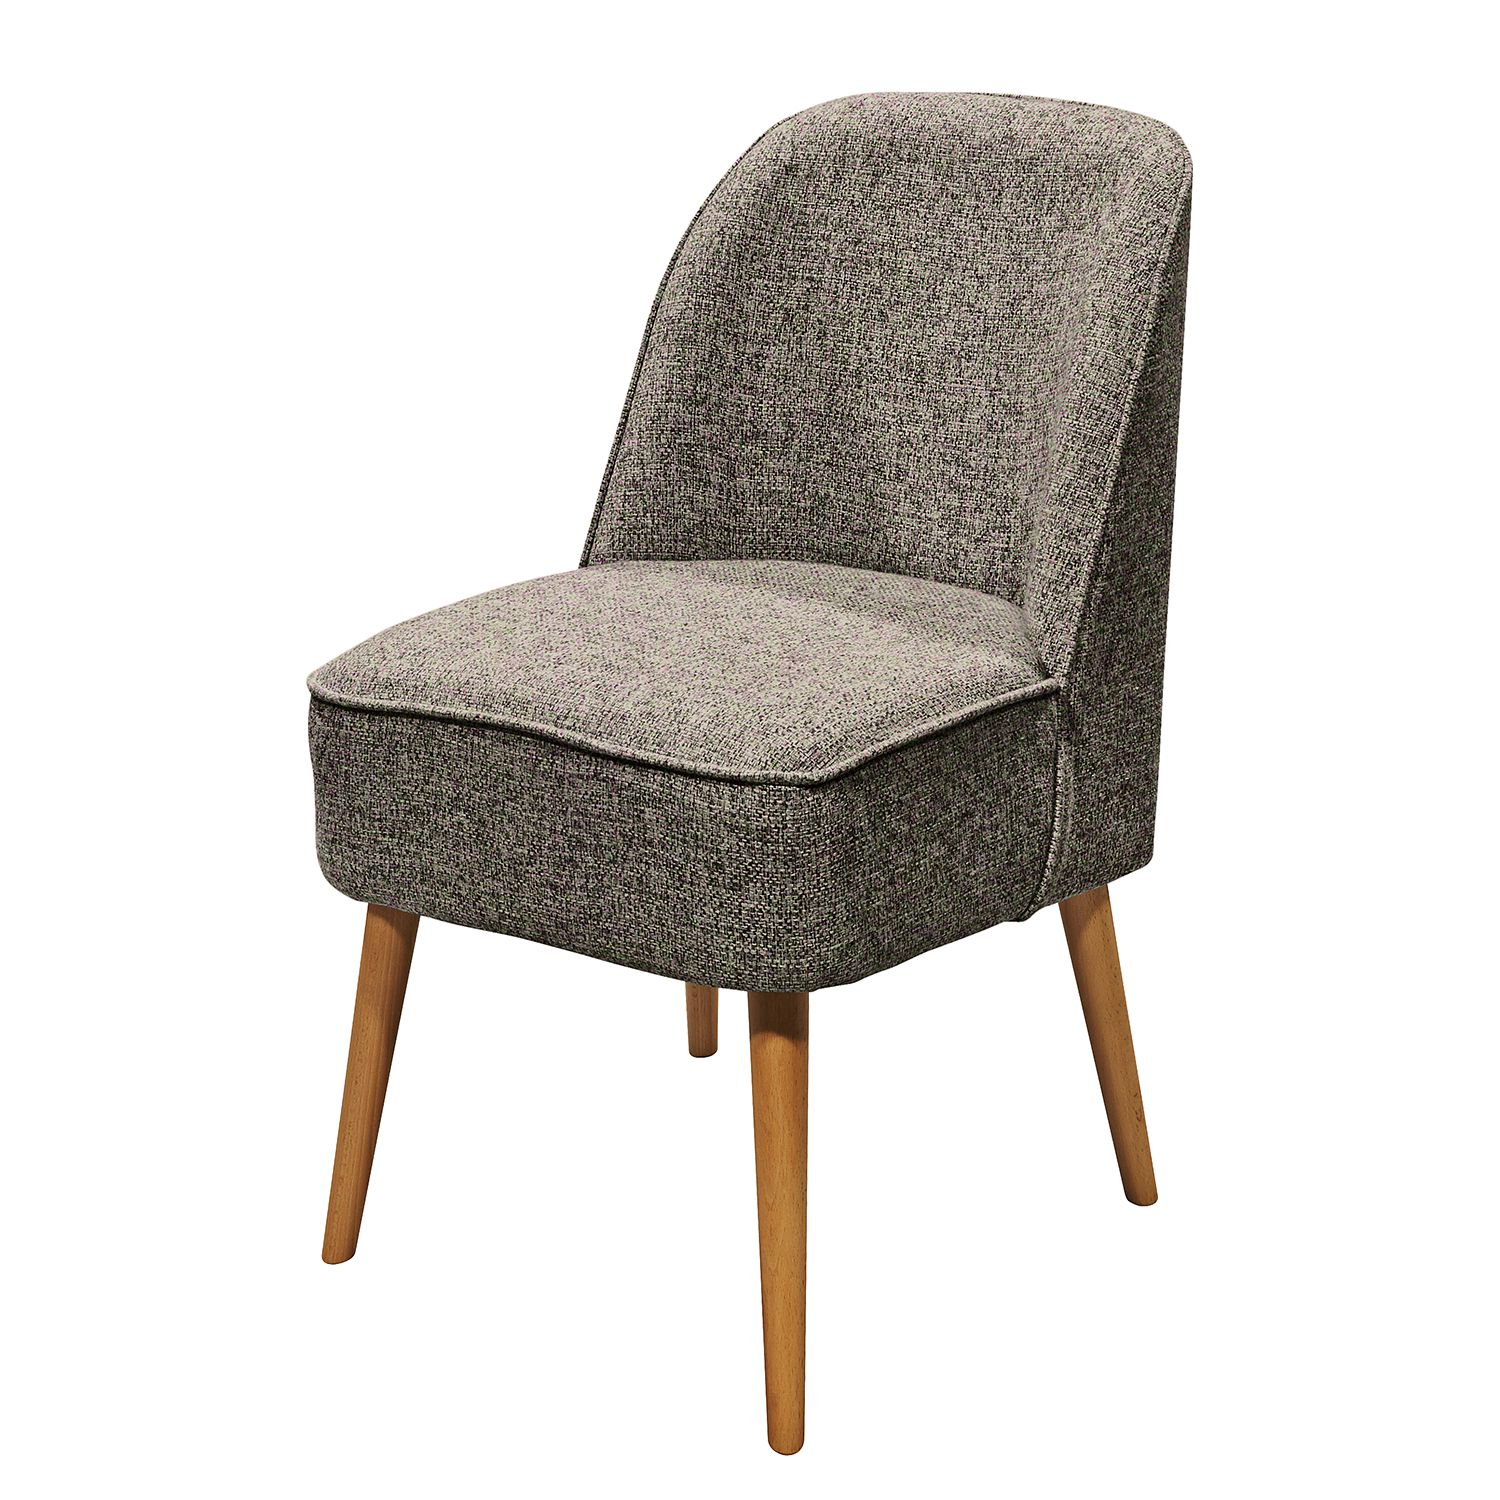 Fauteuil Capain - Tissu - Marron / Gris, mooved